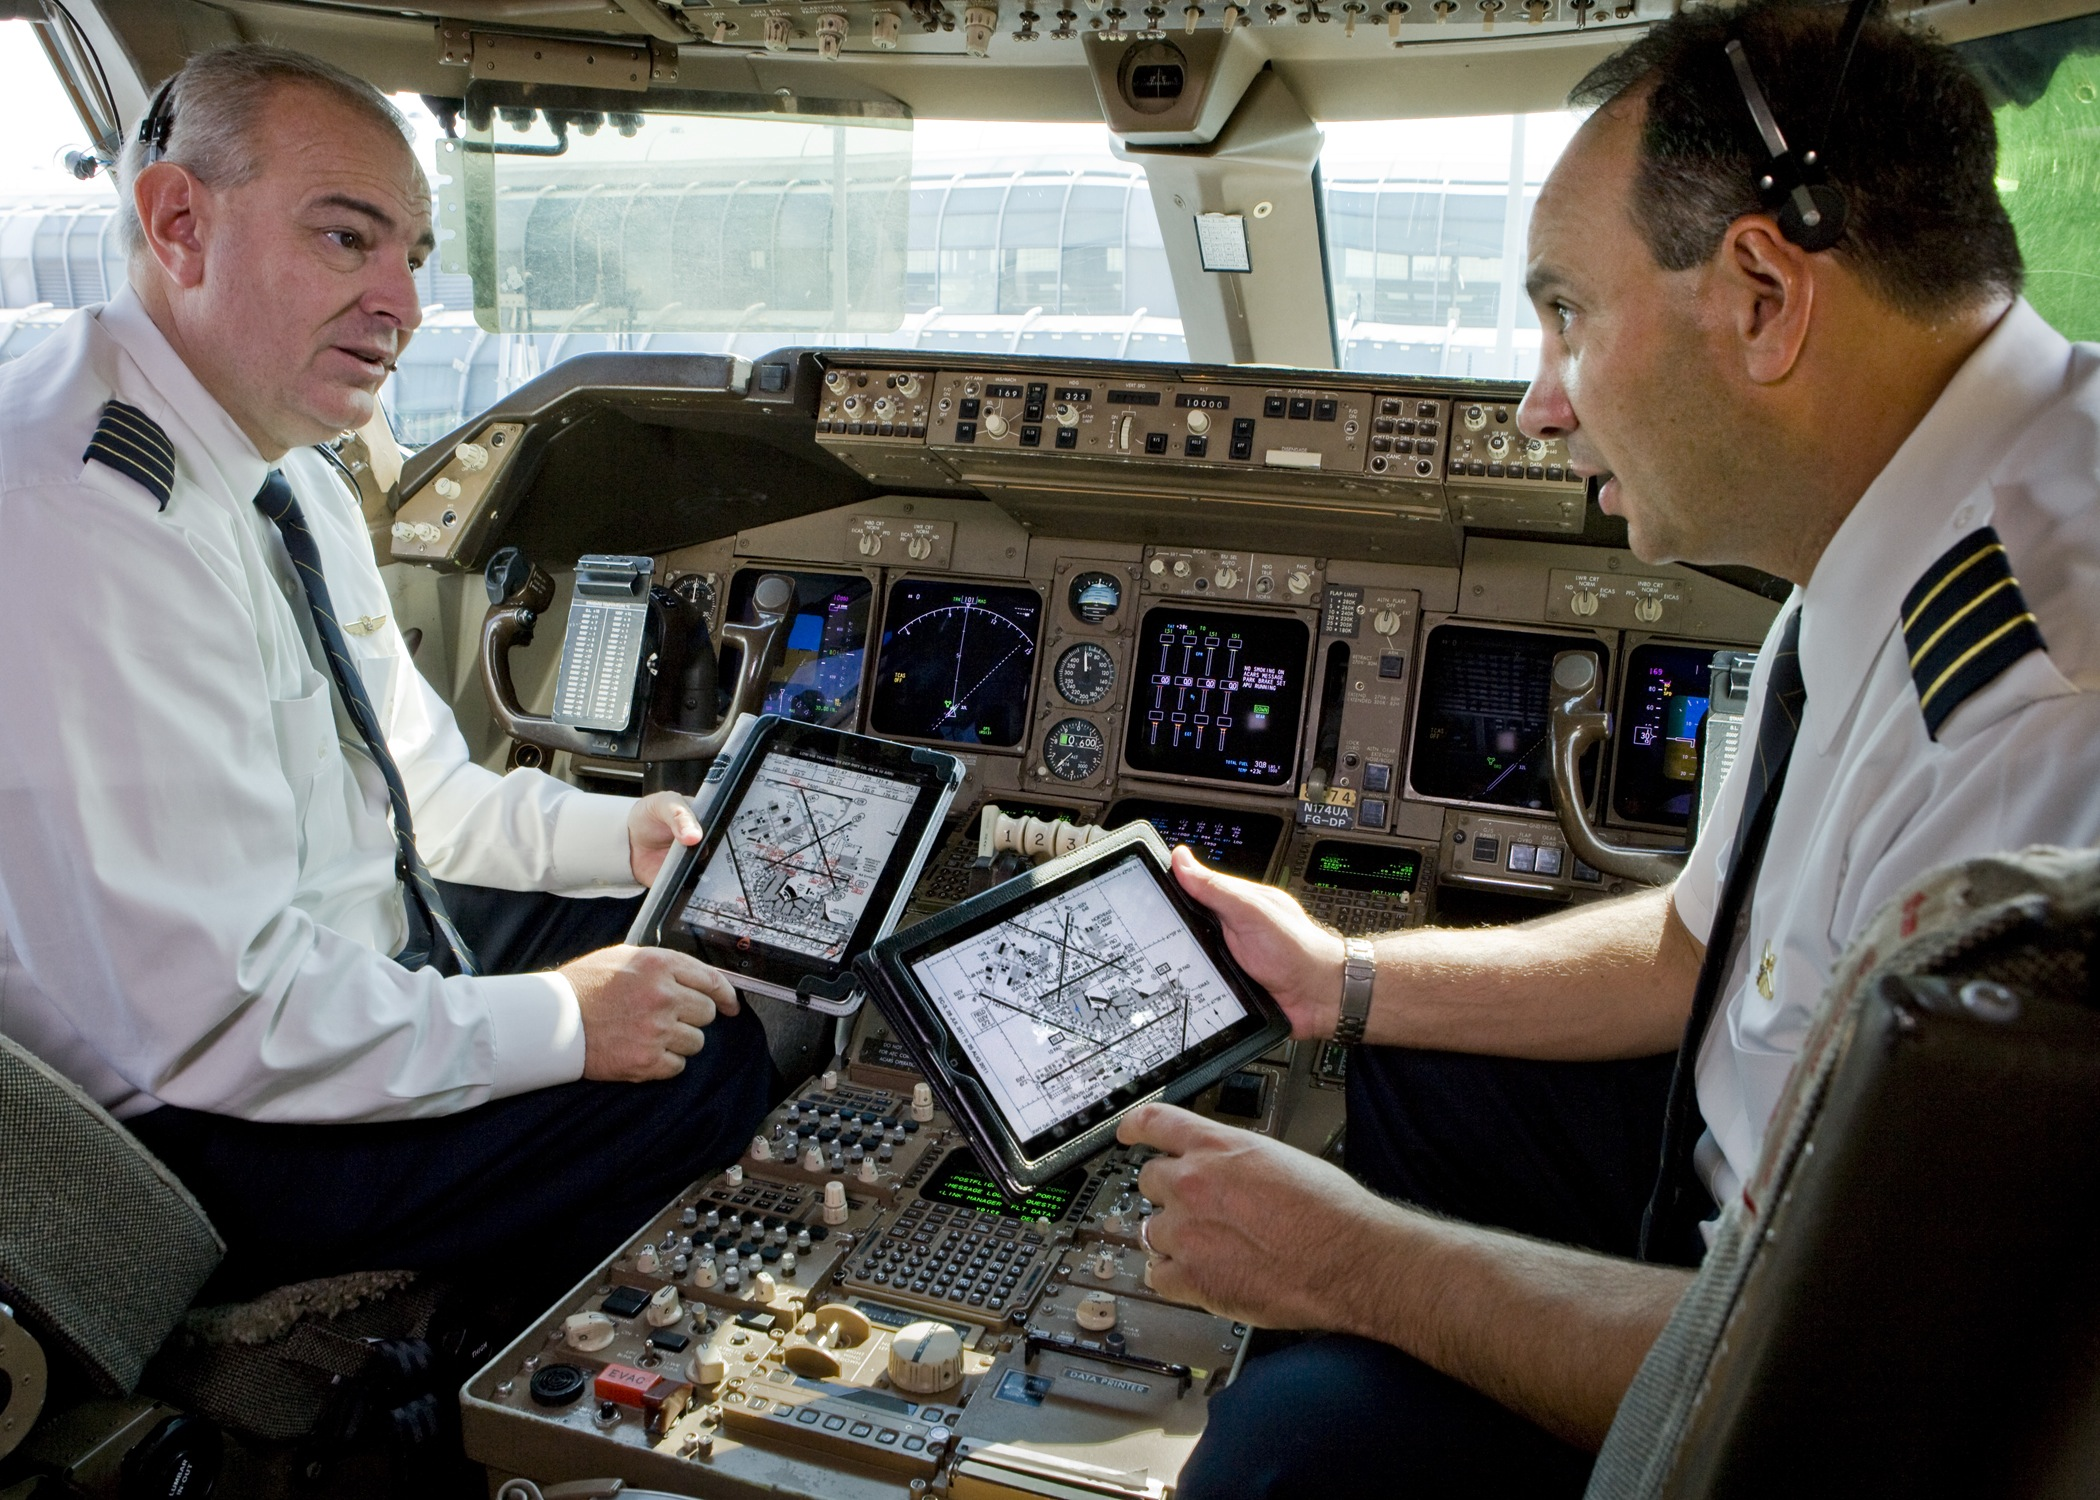 iPad American Airlines